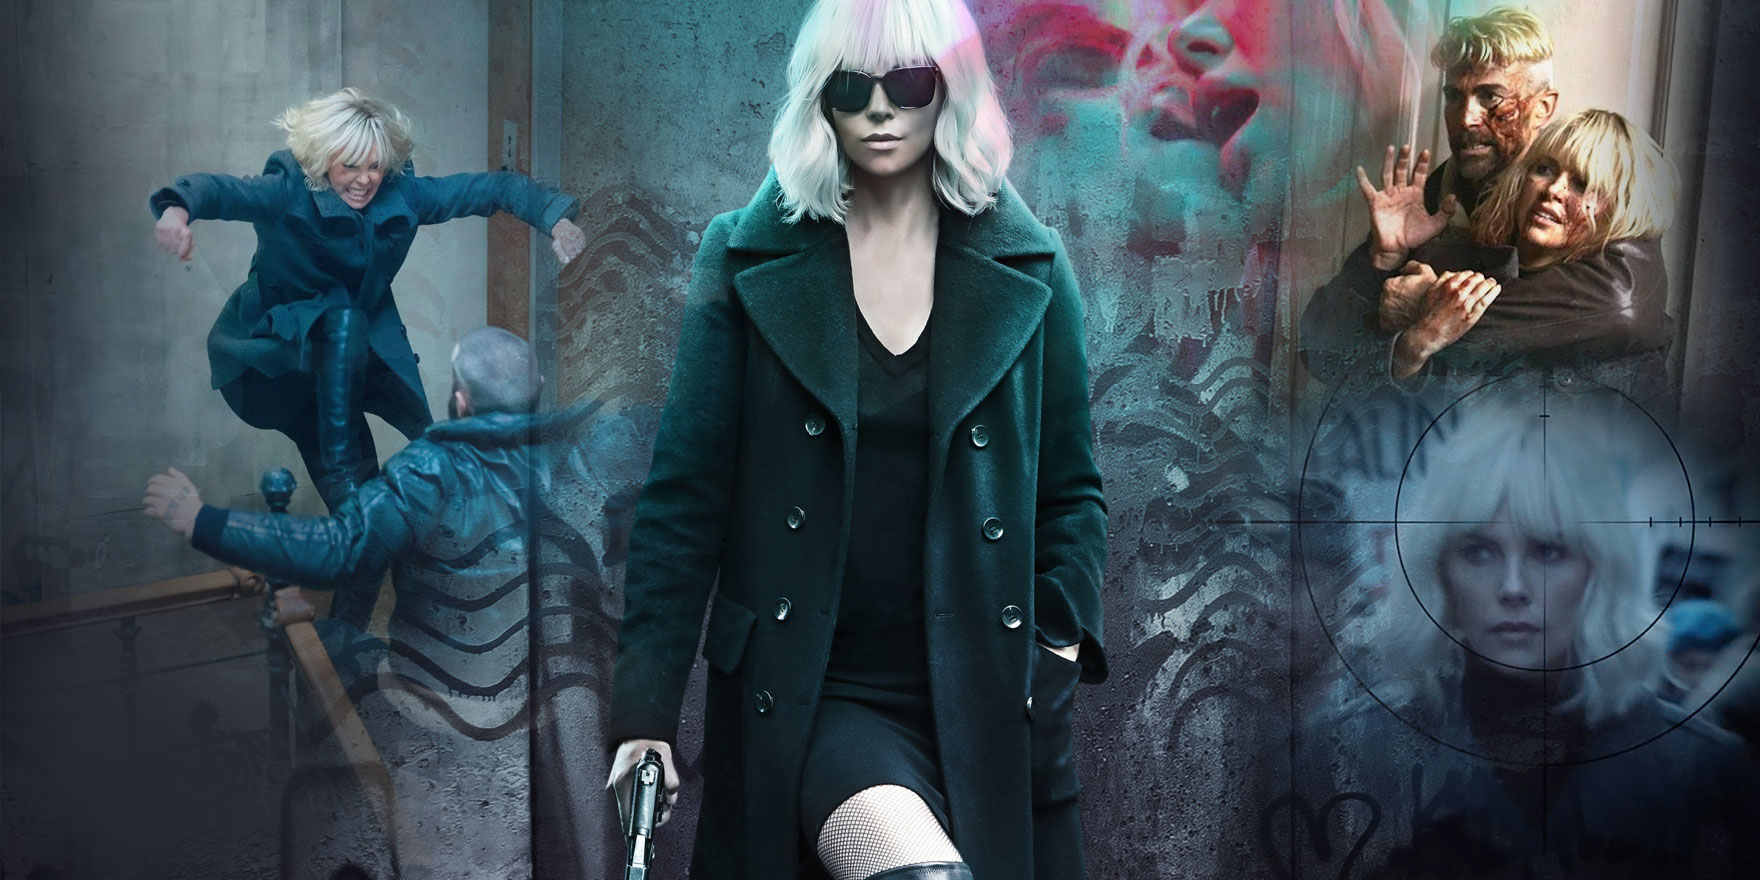 Atomic Blonde - Header Image